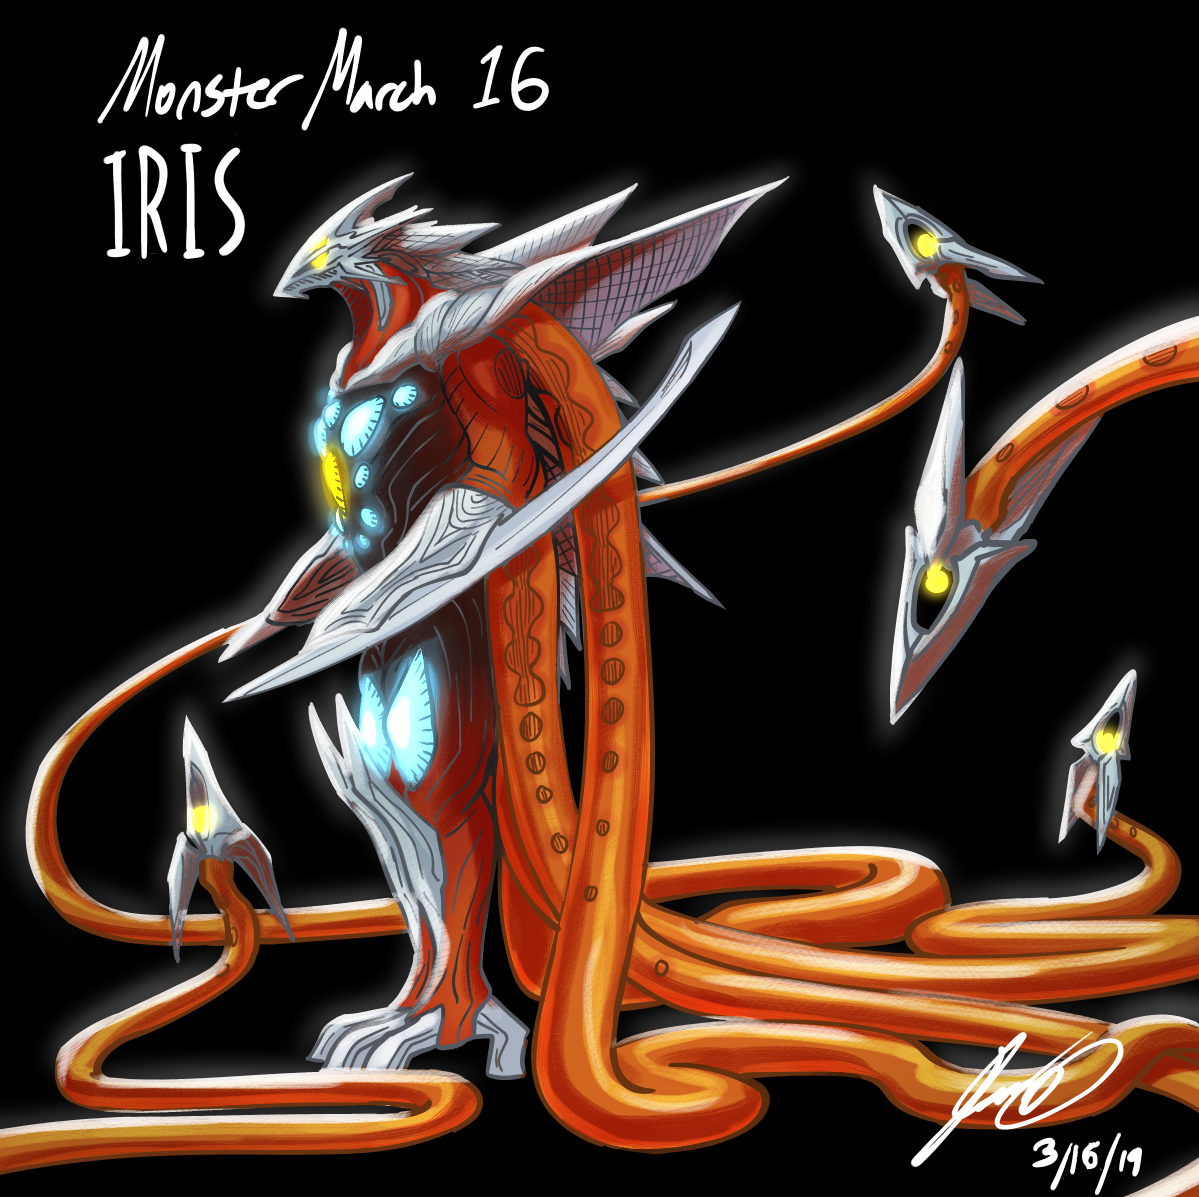 Kaiju Monster March 16 - Iris by pyrasterran